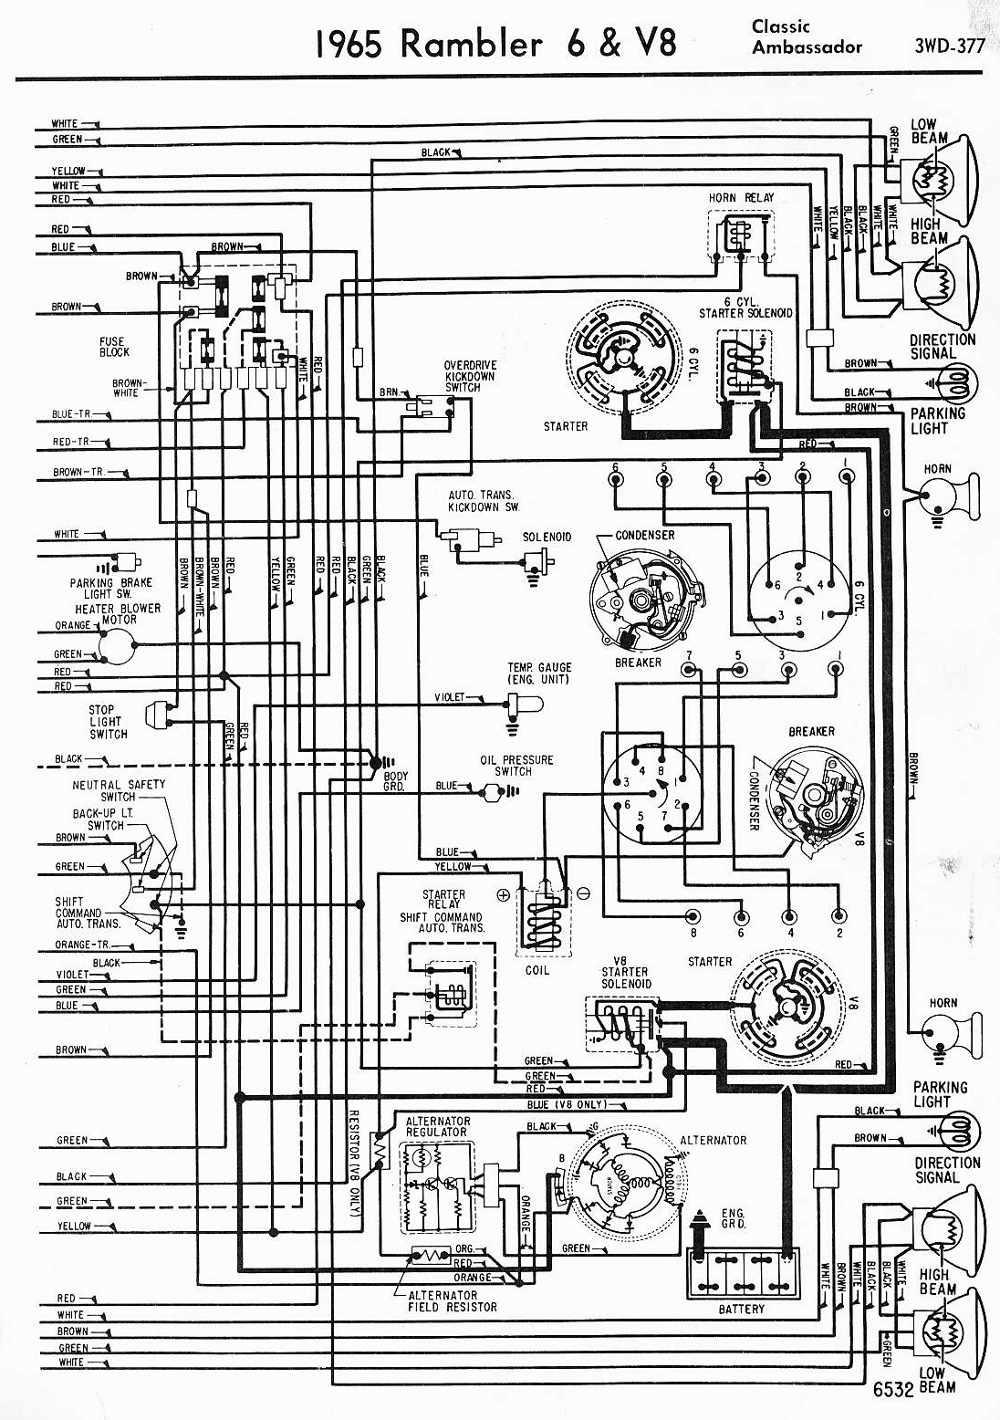 Lh torana dash wiring diagram what do flowchart symbols mean online wiring diagrams of 1965 amc